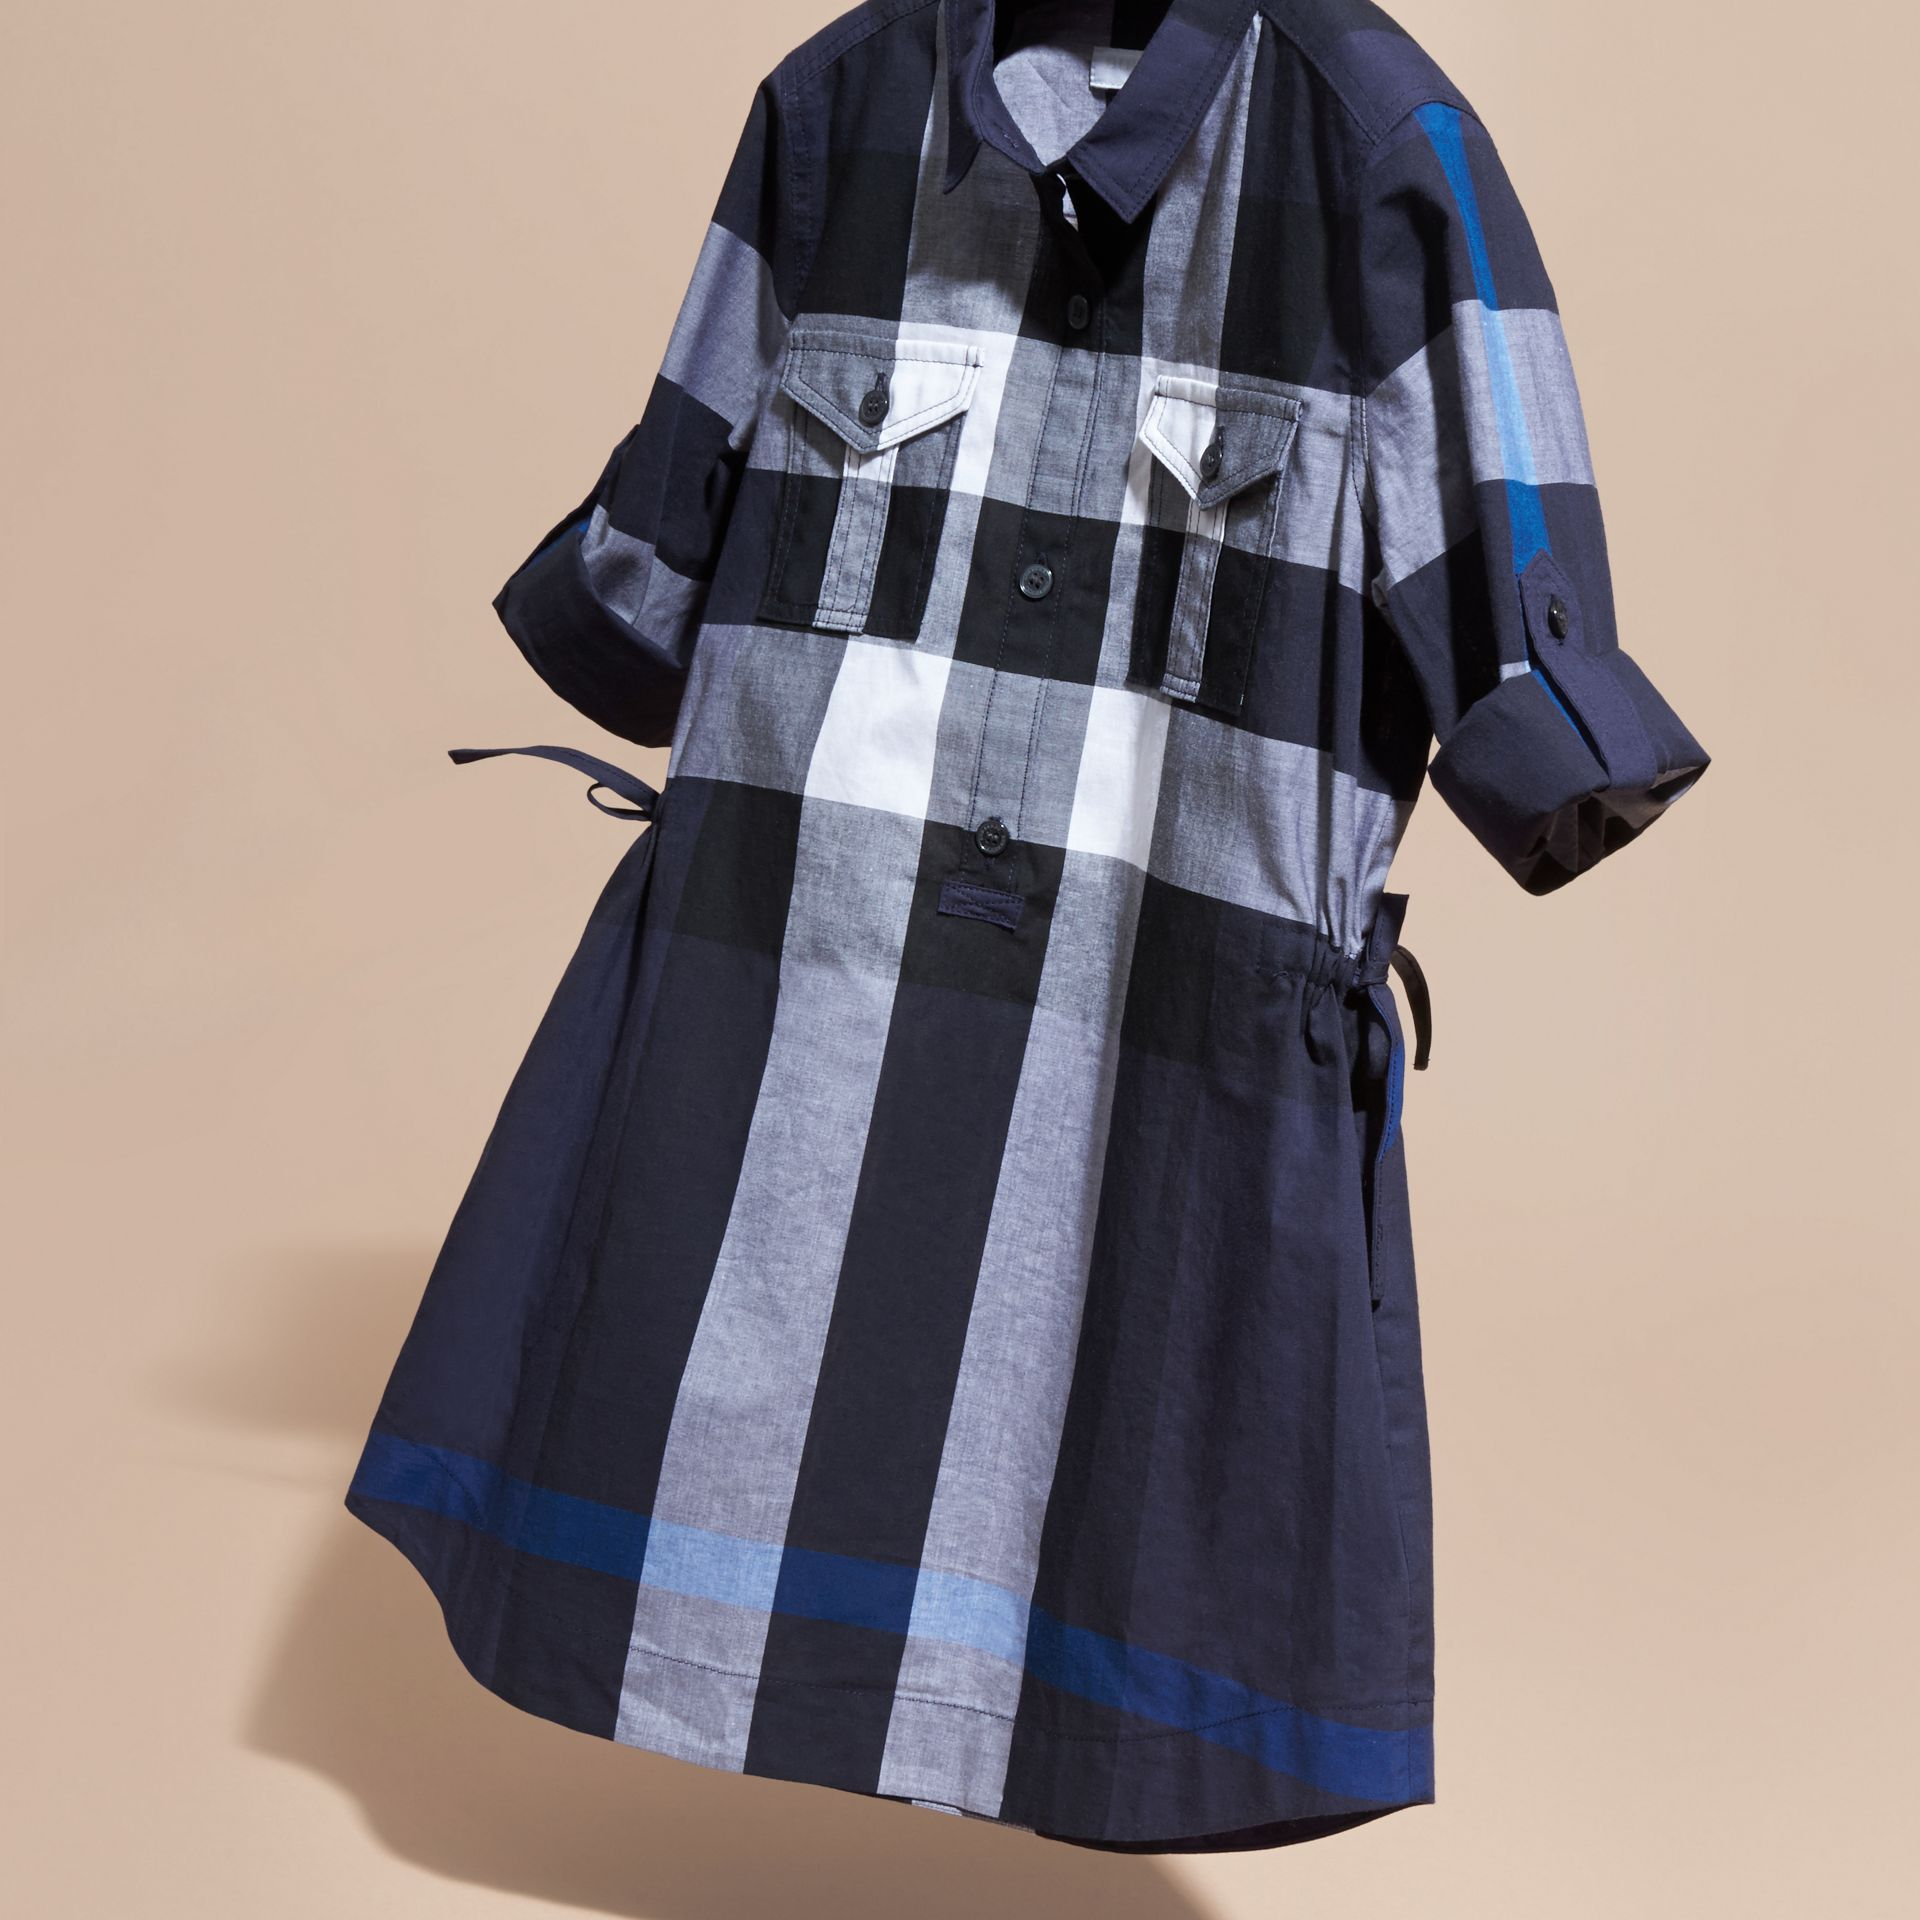 Navy check Check Cotton Shirt Dress Navy - gallery image 3